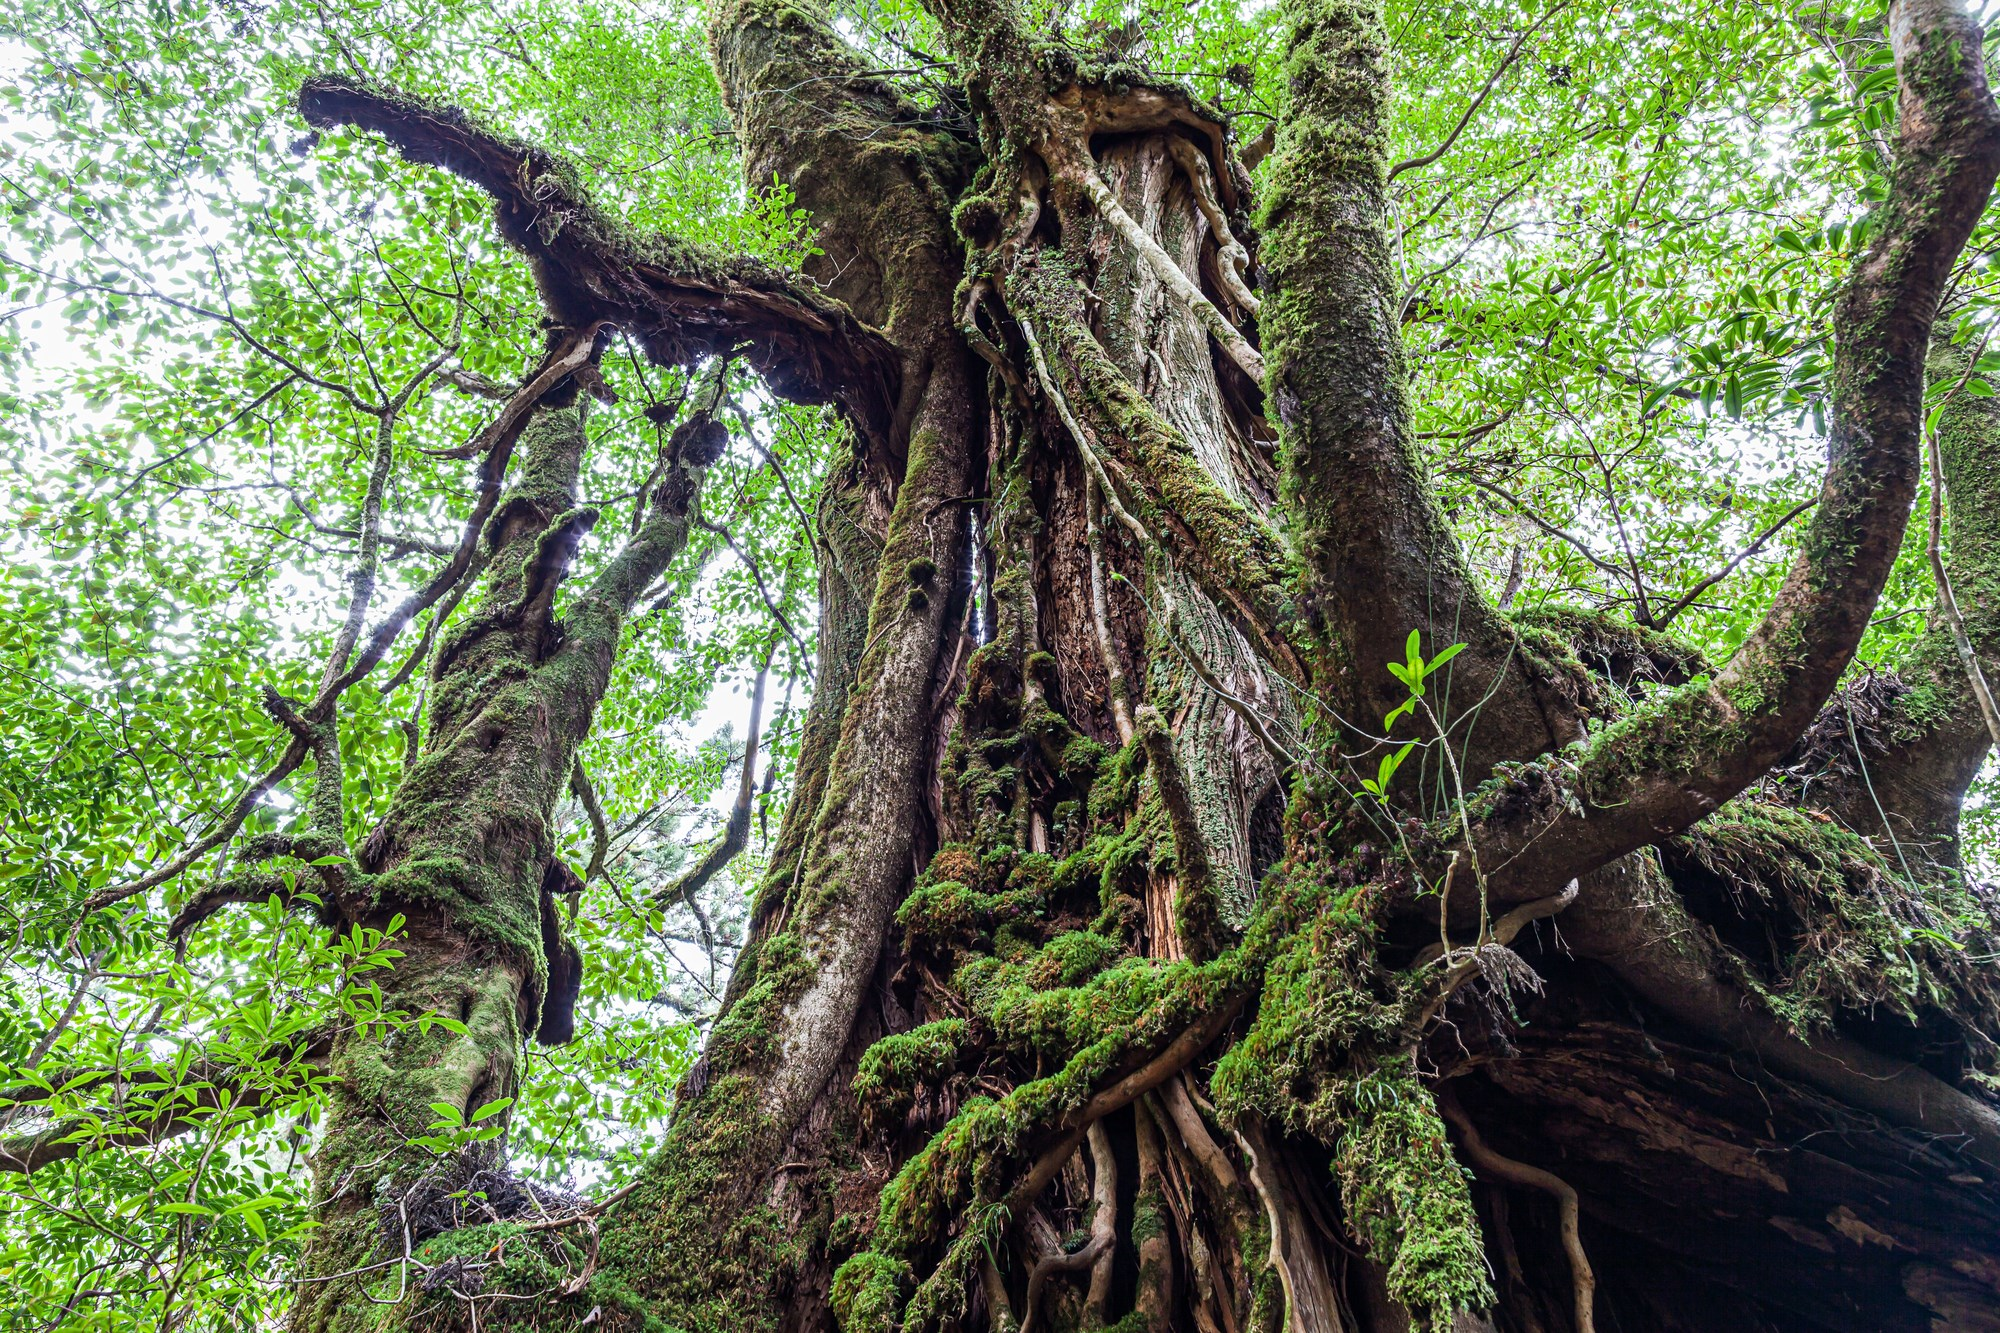 May be an image of tree and nature